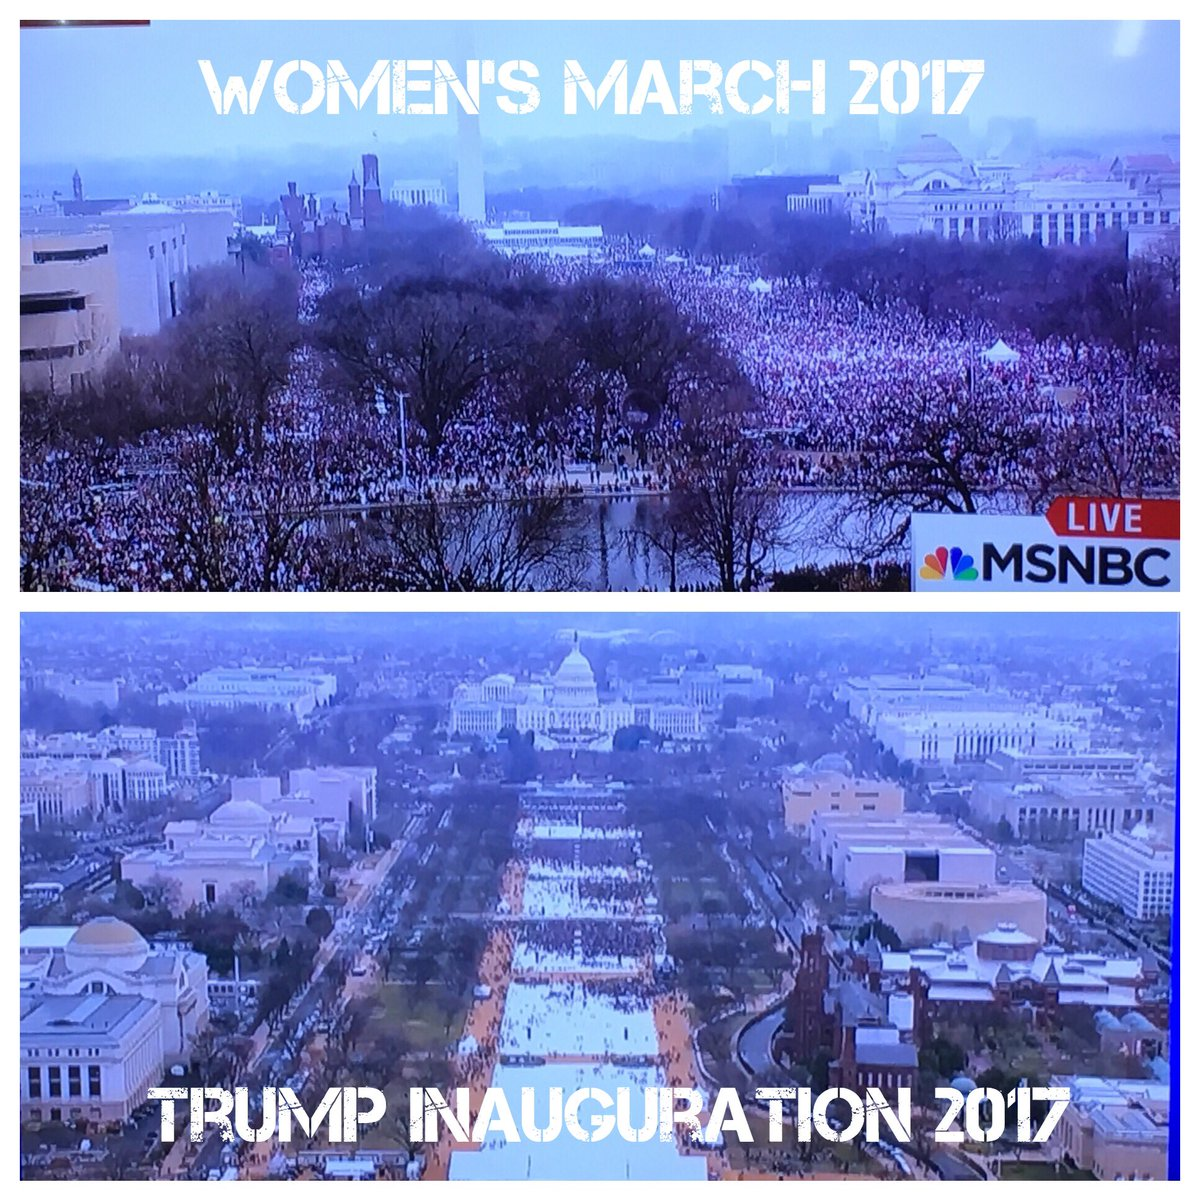 #MSNBC just announced the #WomensMarch is the largest presidential protest march in history. #WomensRightsAreHumanRights<br>http://pic.twitter.com/8MOD4j1Qvy